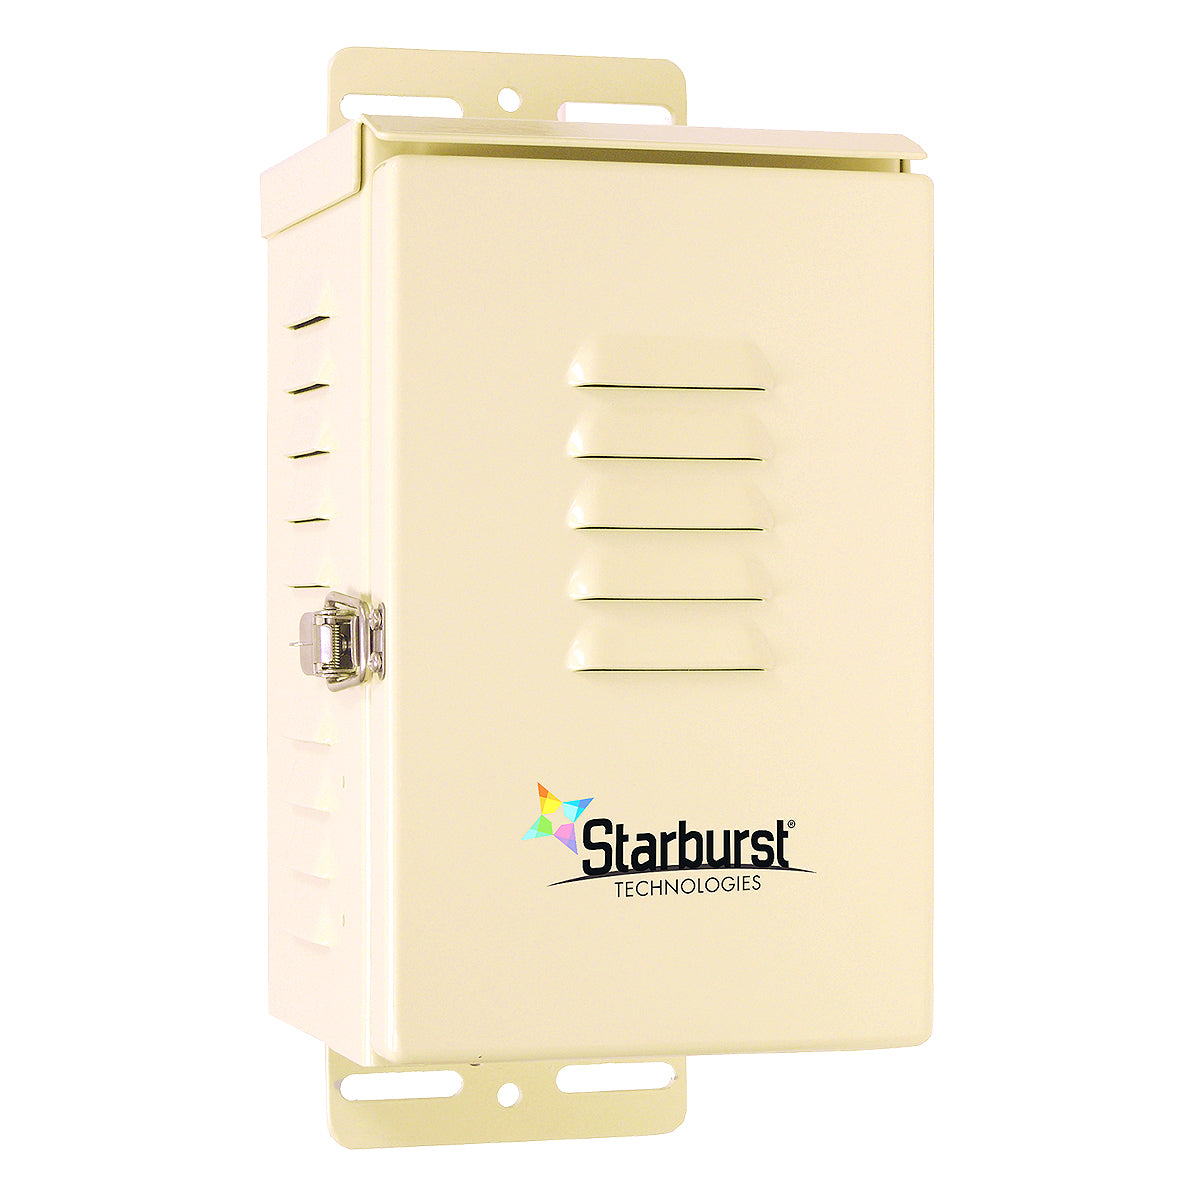 SB-120-220-60  Non Standby CATV Power Supply 120Vac or 220Vac 60Hz Input 60Volt/15Amp or 90Volt/10Amp 900 Watt Output